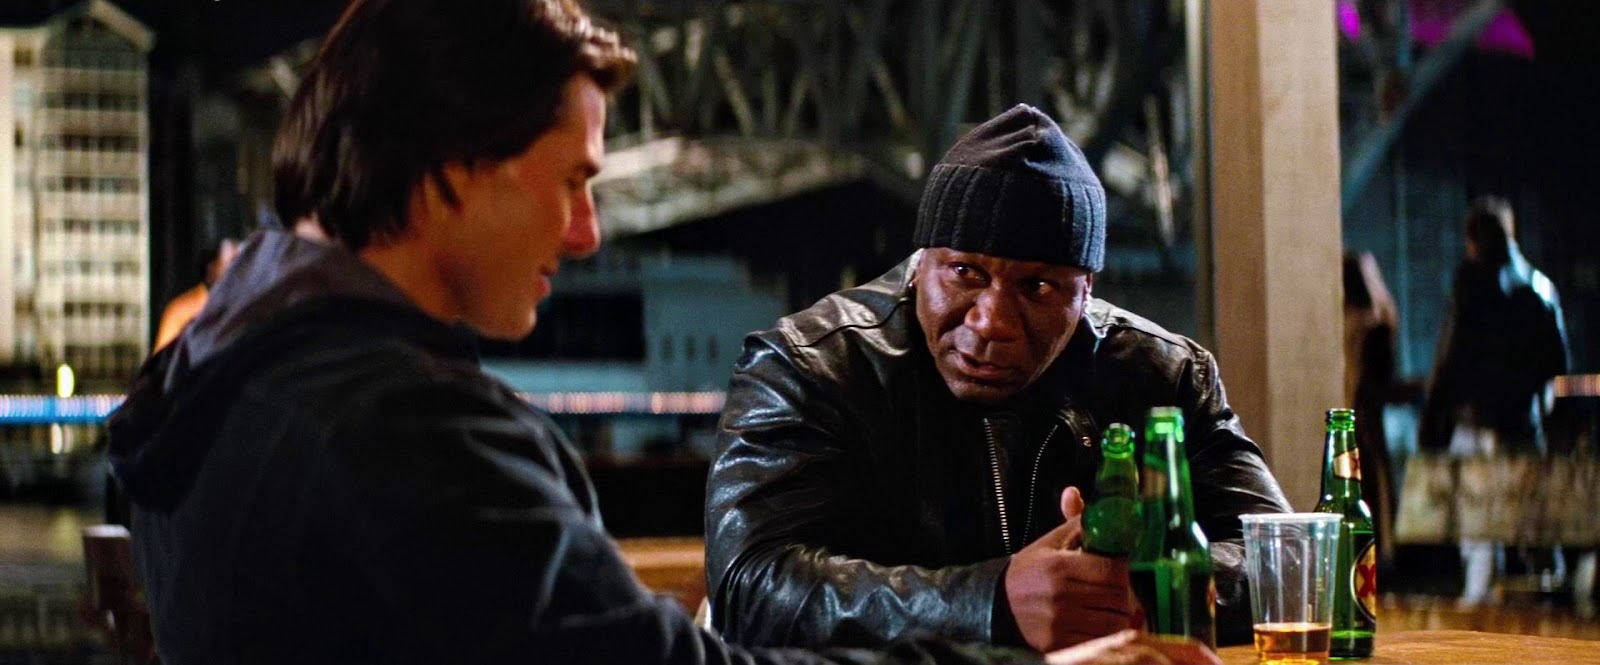 2011, Mission: Impossible - Ghost Protocol, Actor: Luther Stickell